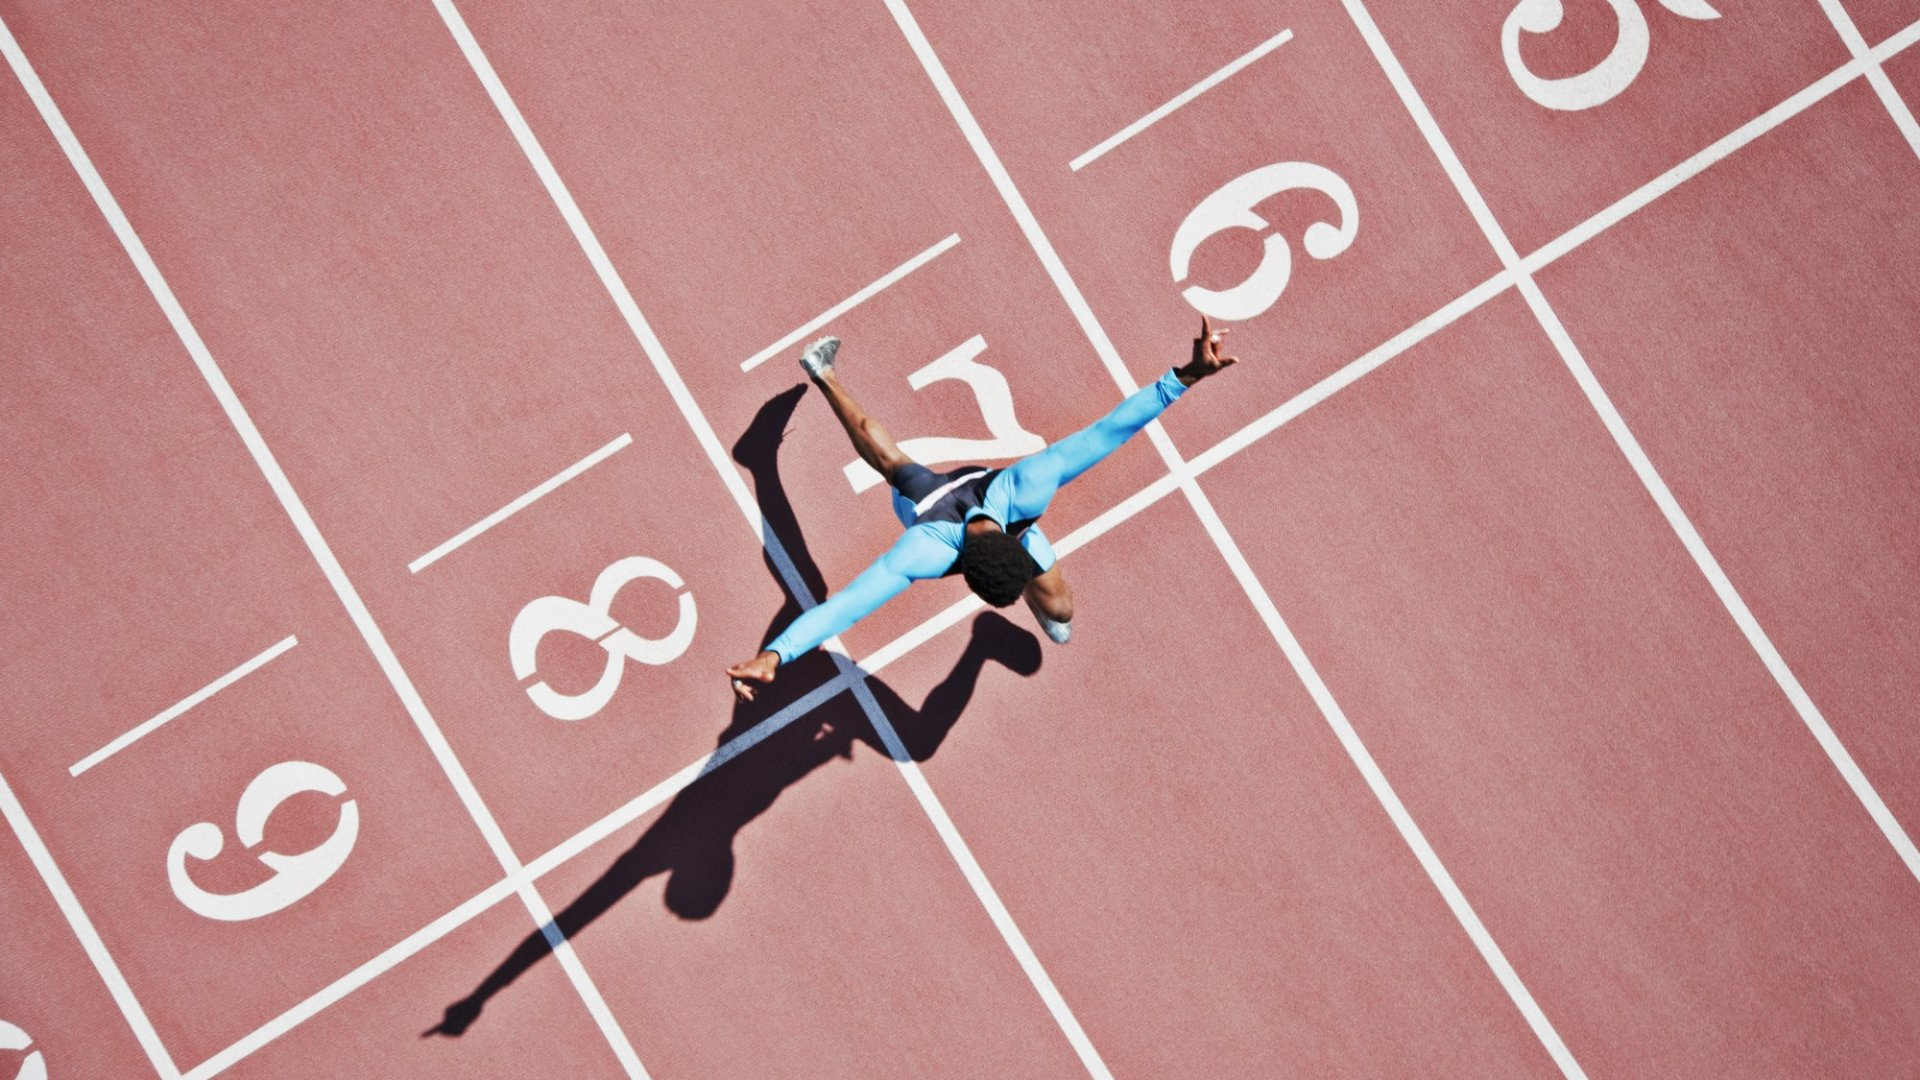 Having Trouble With Your Team Delivering on Its Commitments? Here Are 6 Things to Focus On